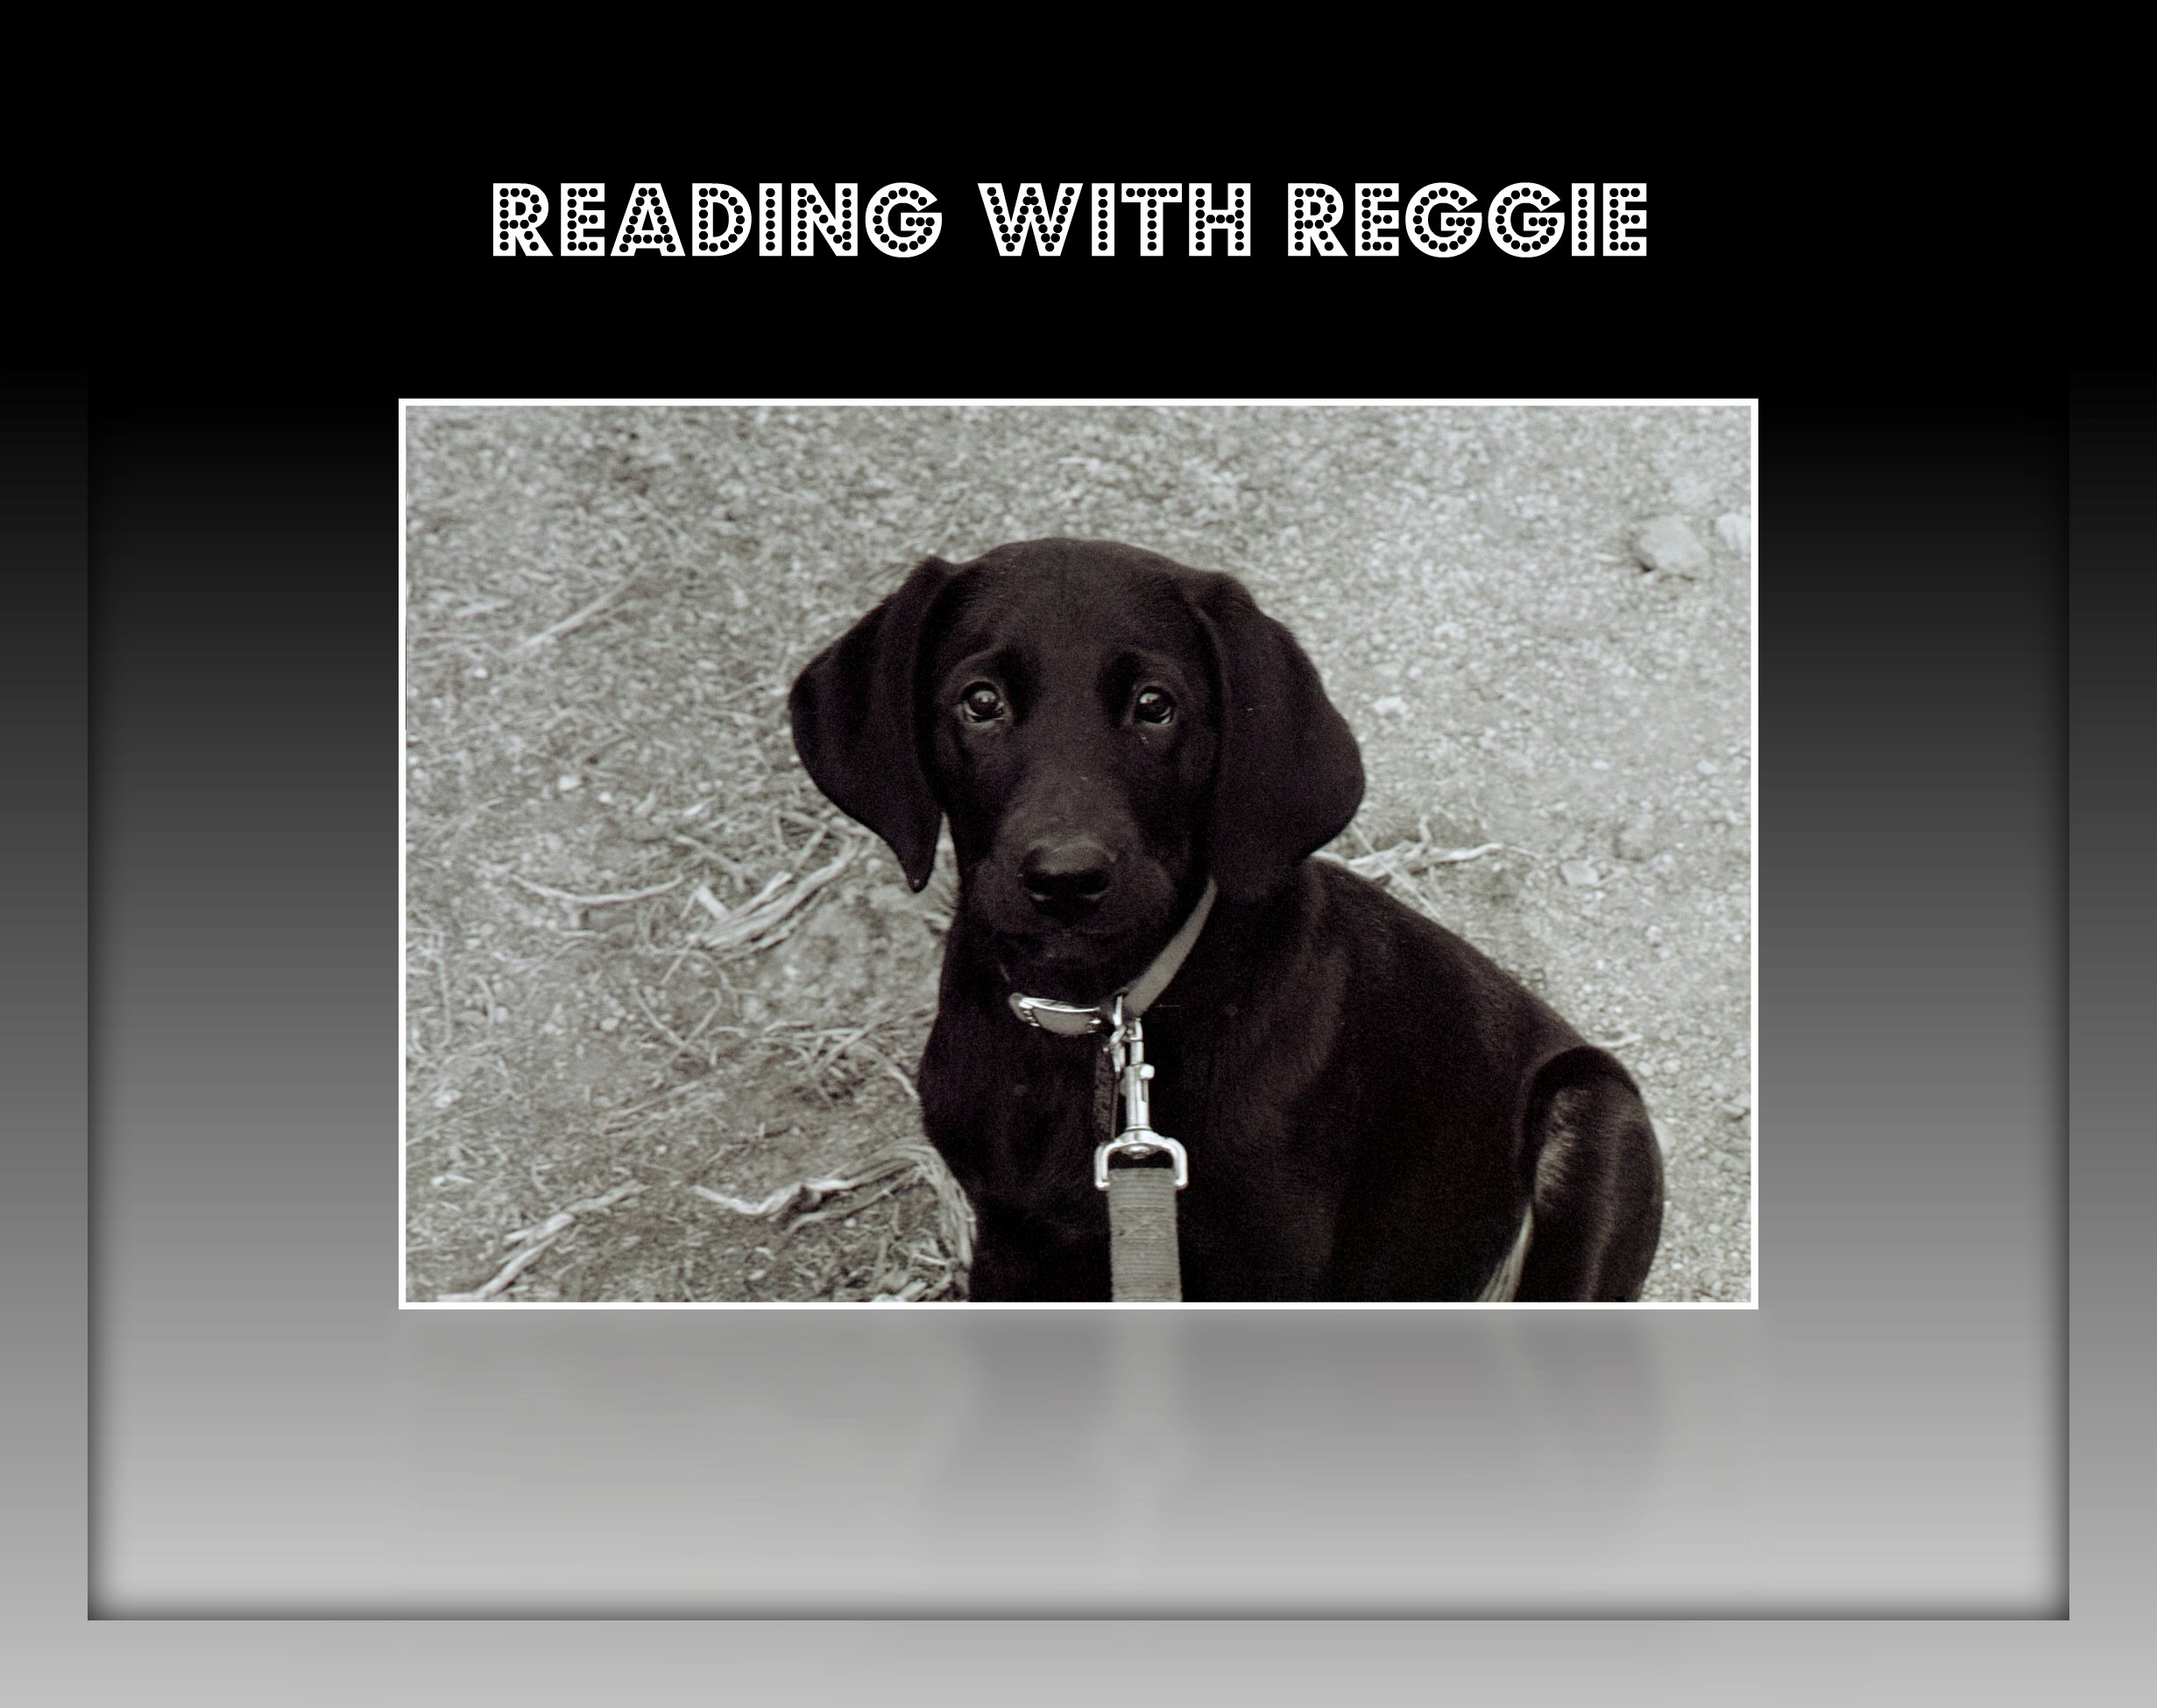 Reading With Reggie by Bill Dahl